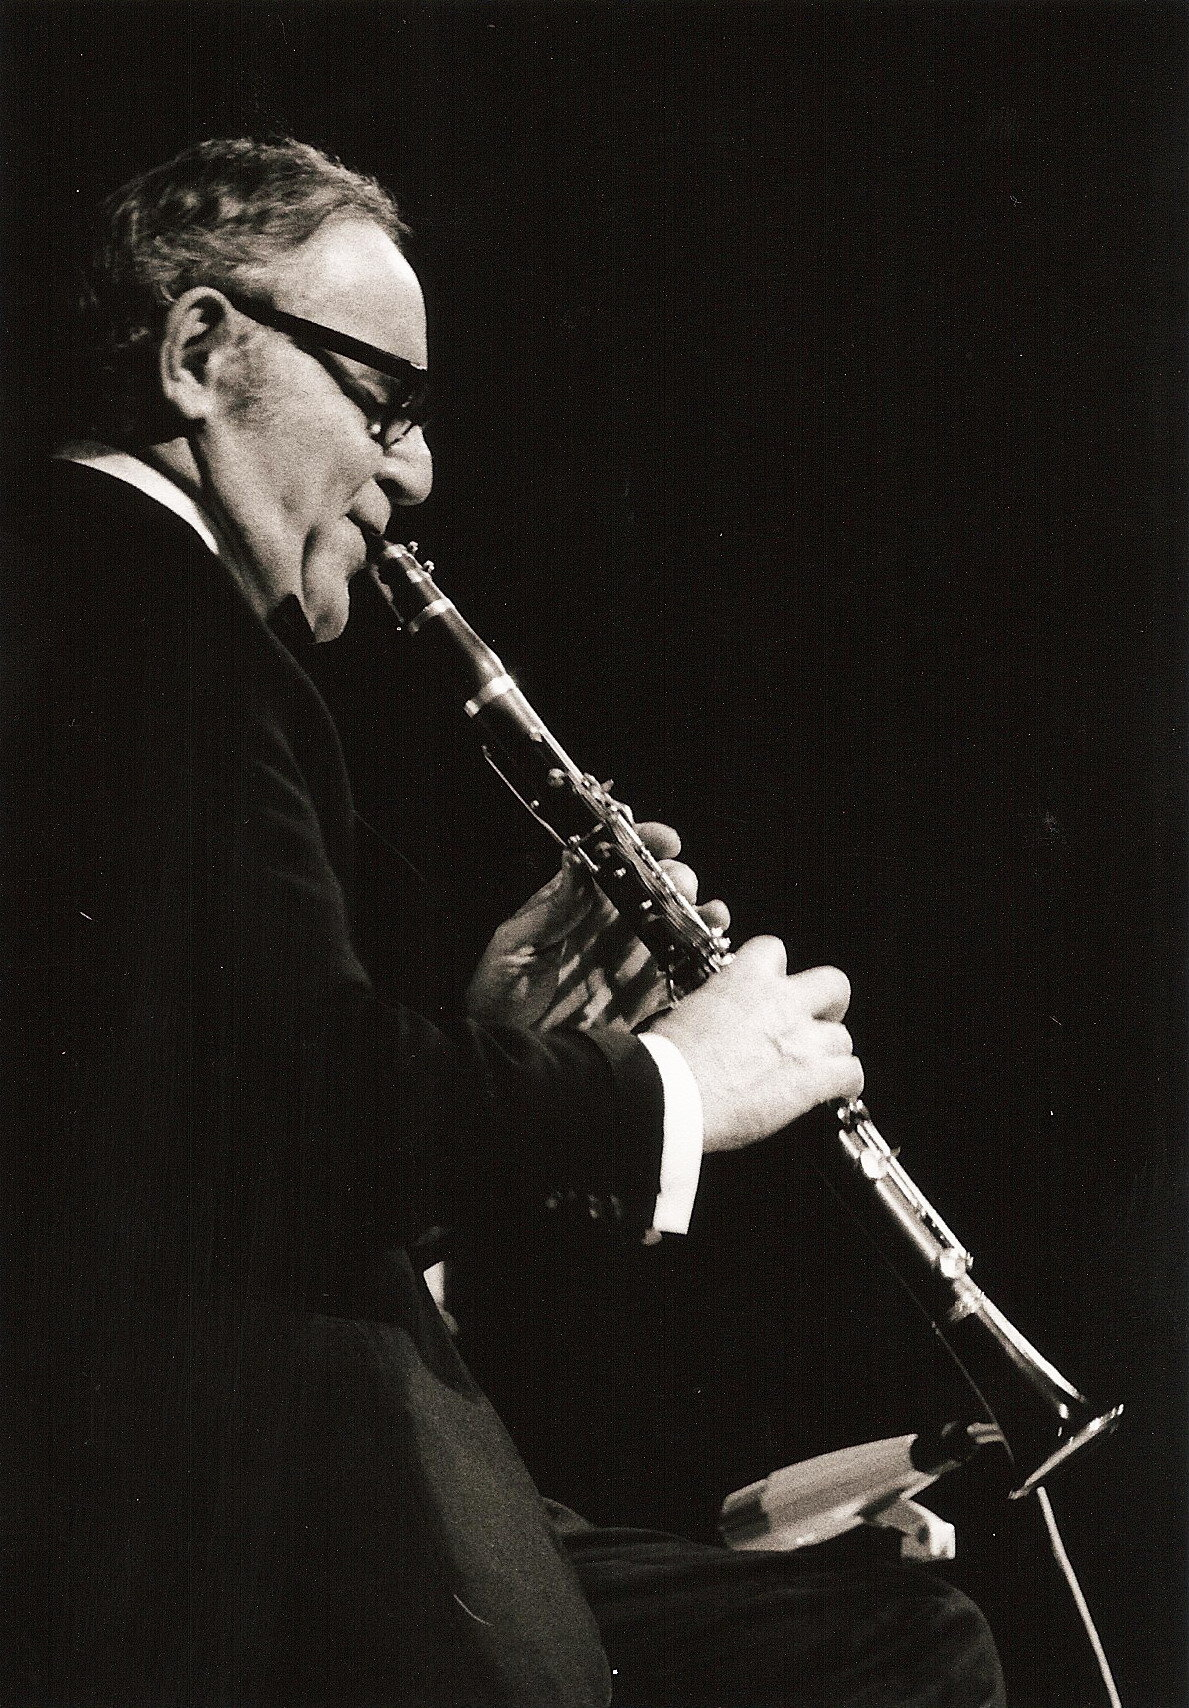 Benny Goodman in concert in Nuremberg, Germany 1971